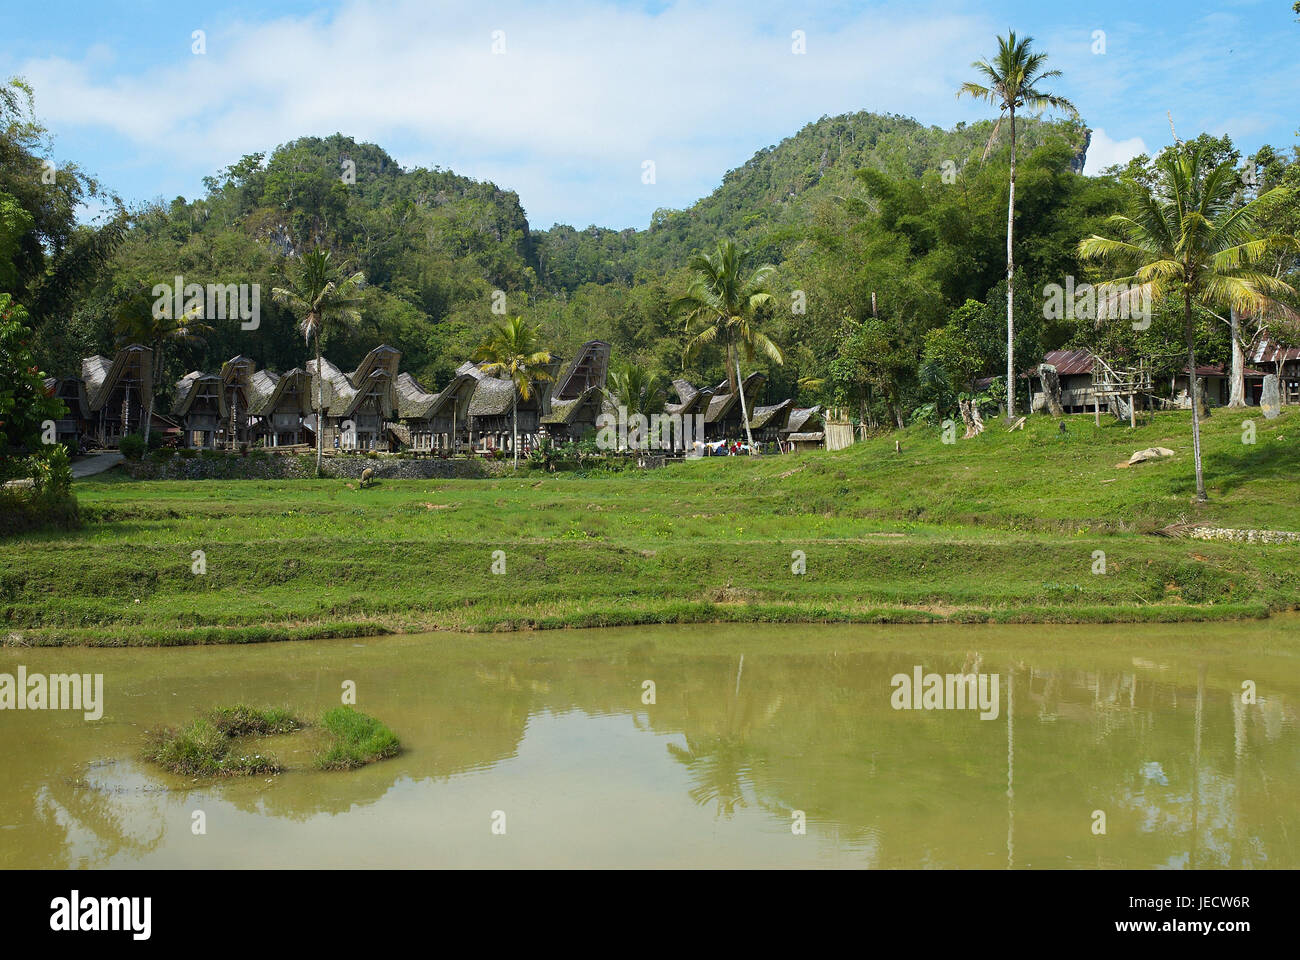 Indonesia, Sulawesi, The village Ke'te Kesu, - Stock Image